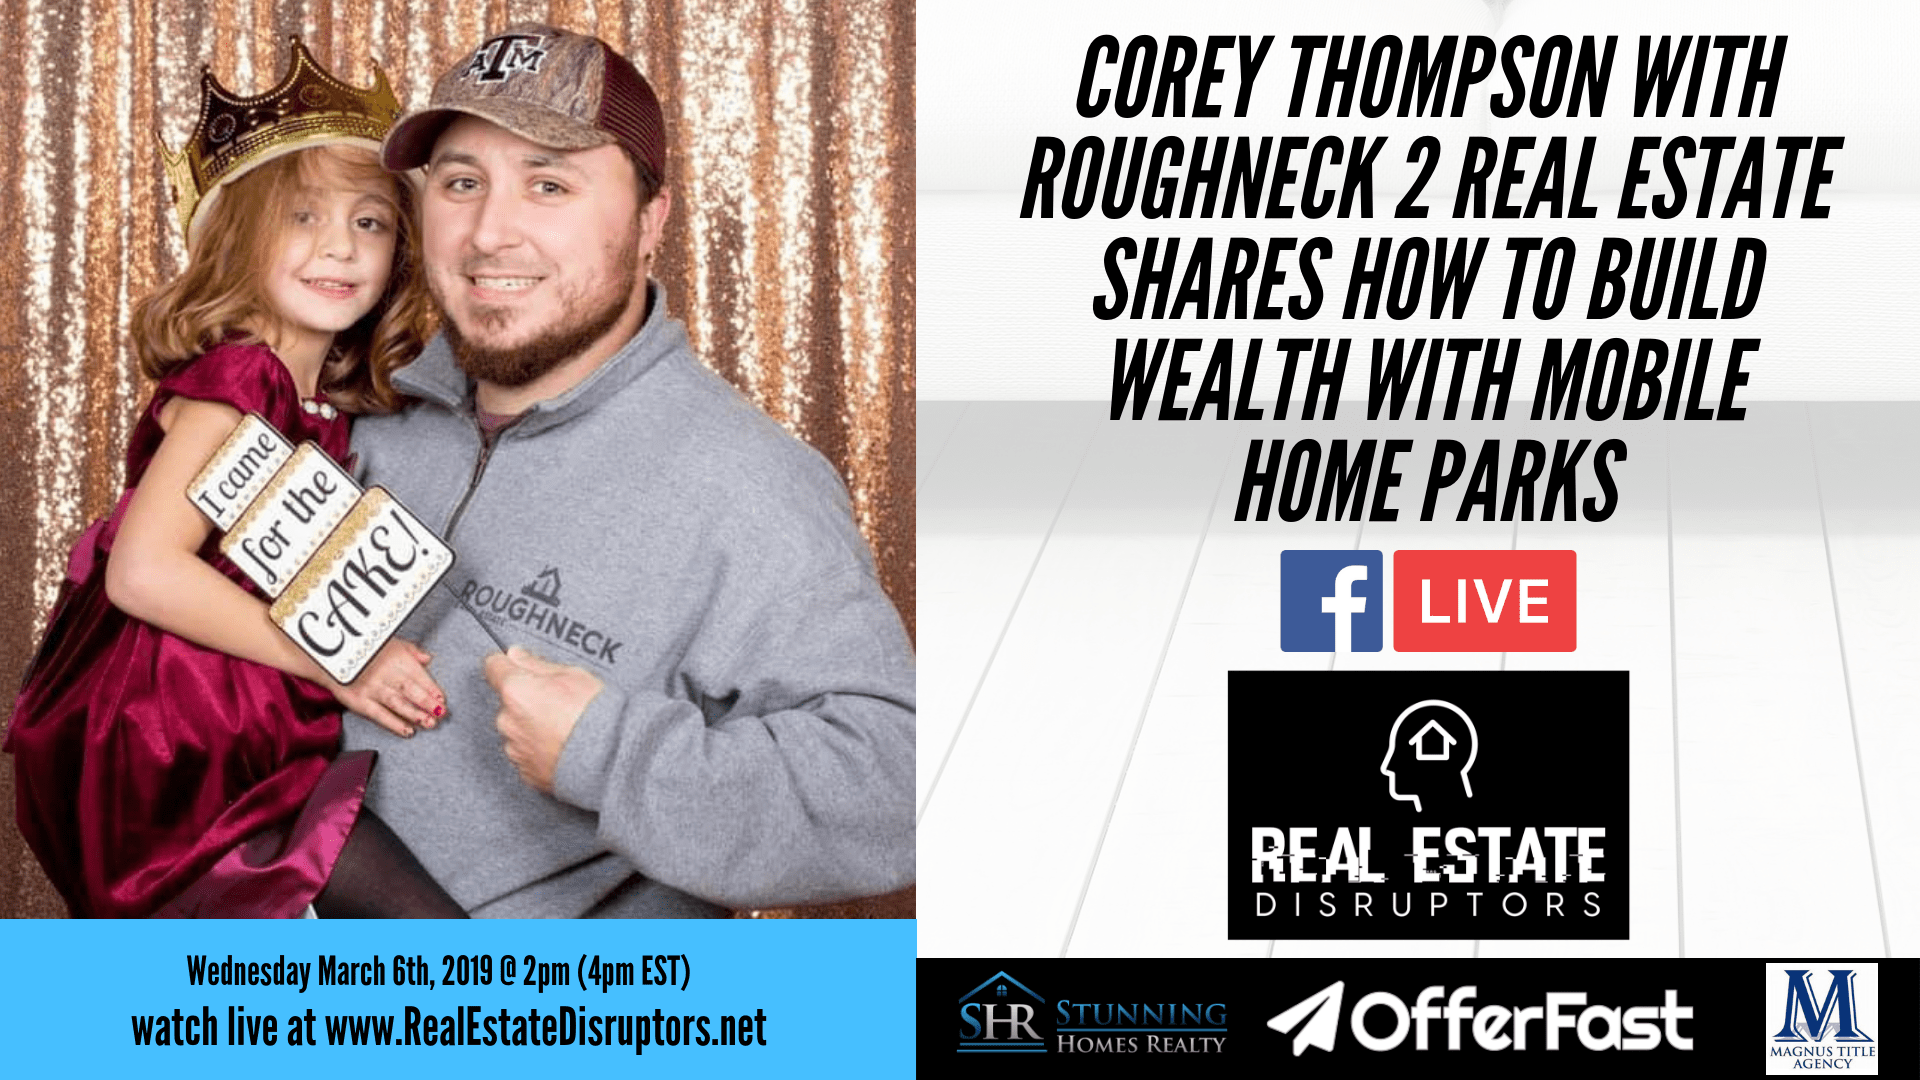 Corey Thompson Shares How To Build Wealth Through Mobile Home Parks